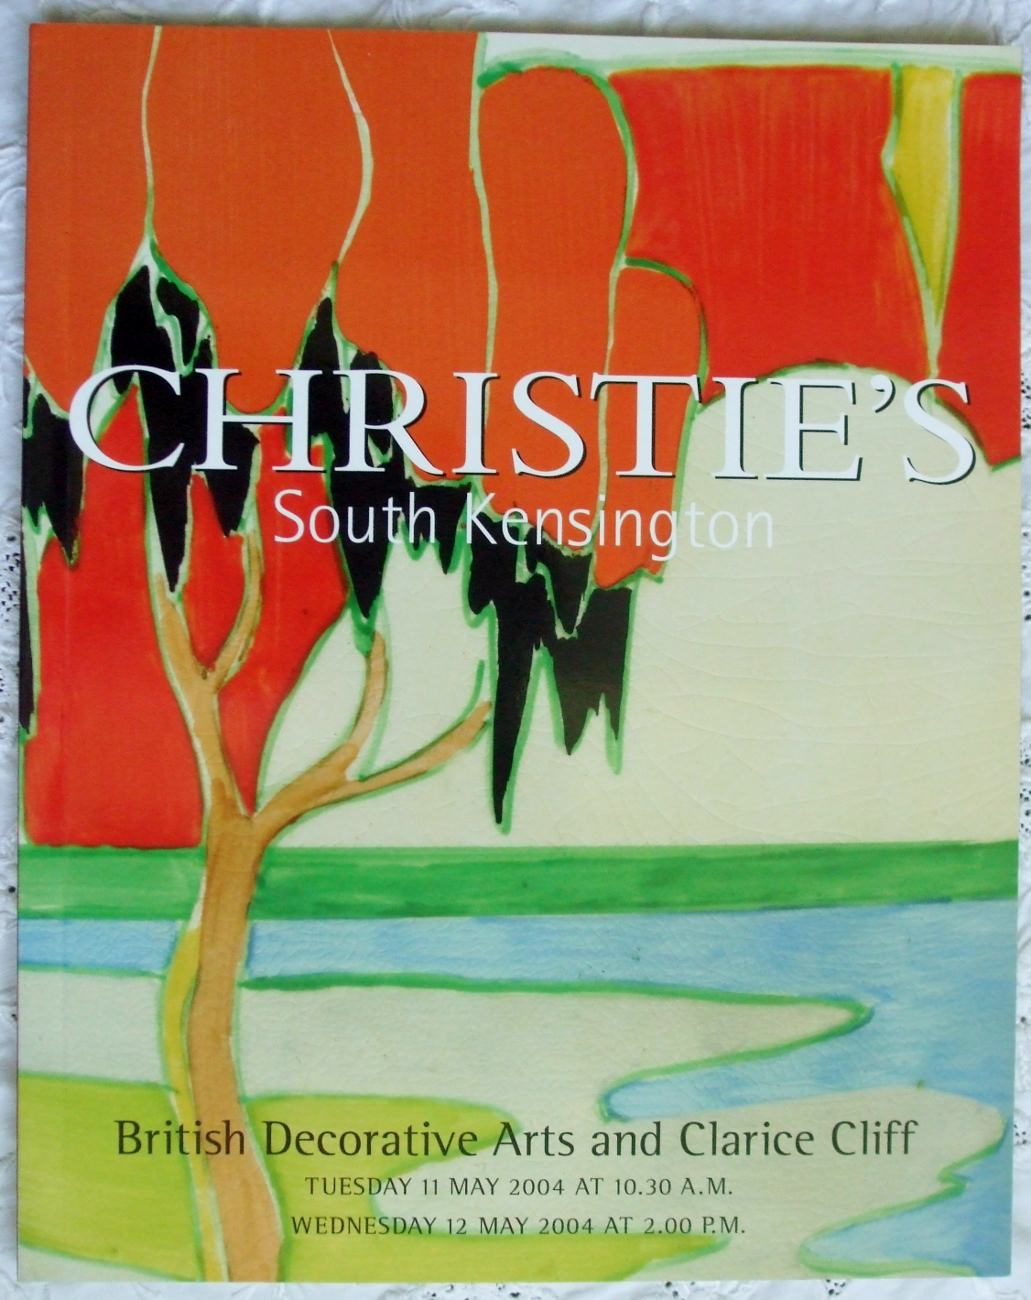 Christies South Kensington British Decorative Arts And Clarice Cliff 11 And 12 May 2004